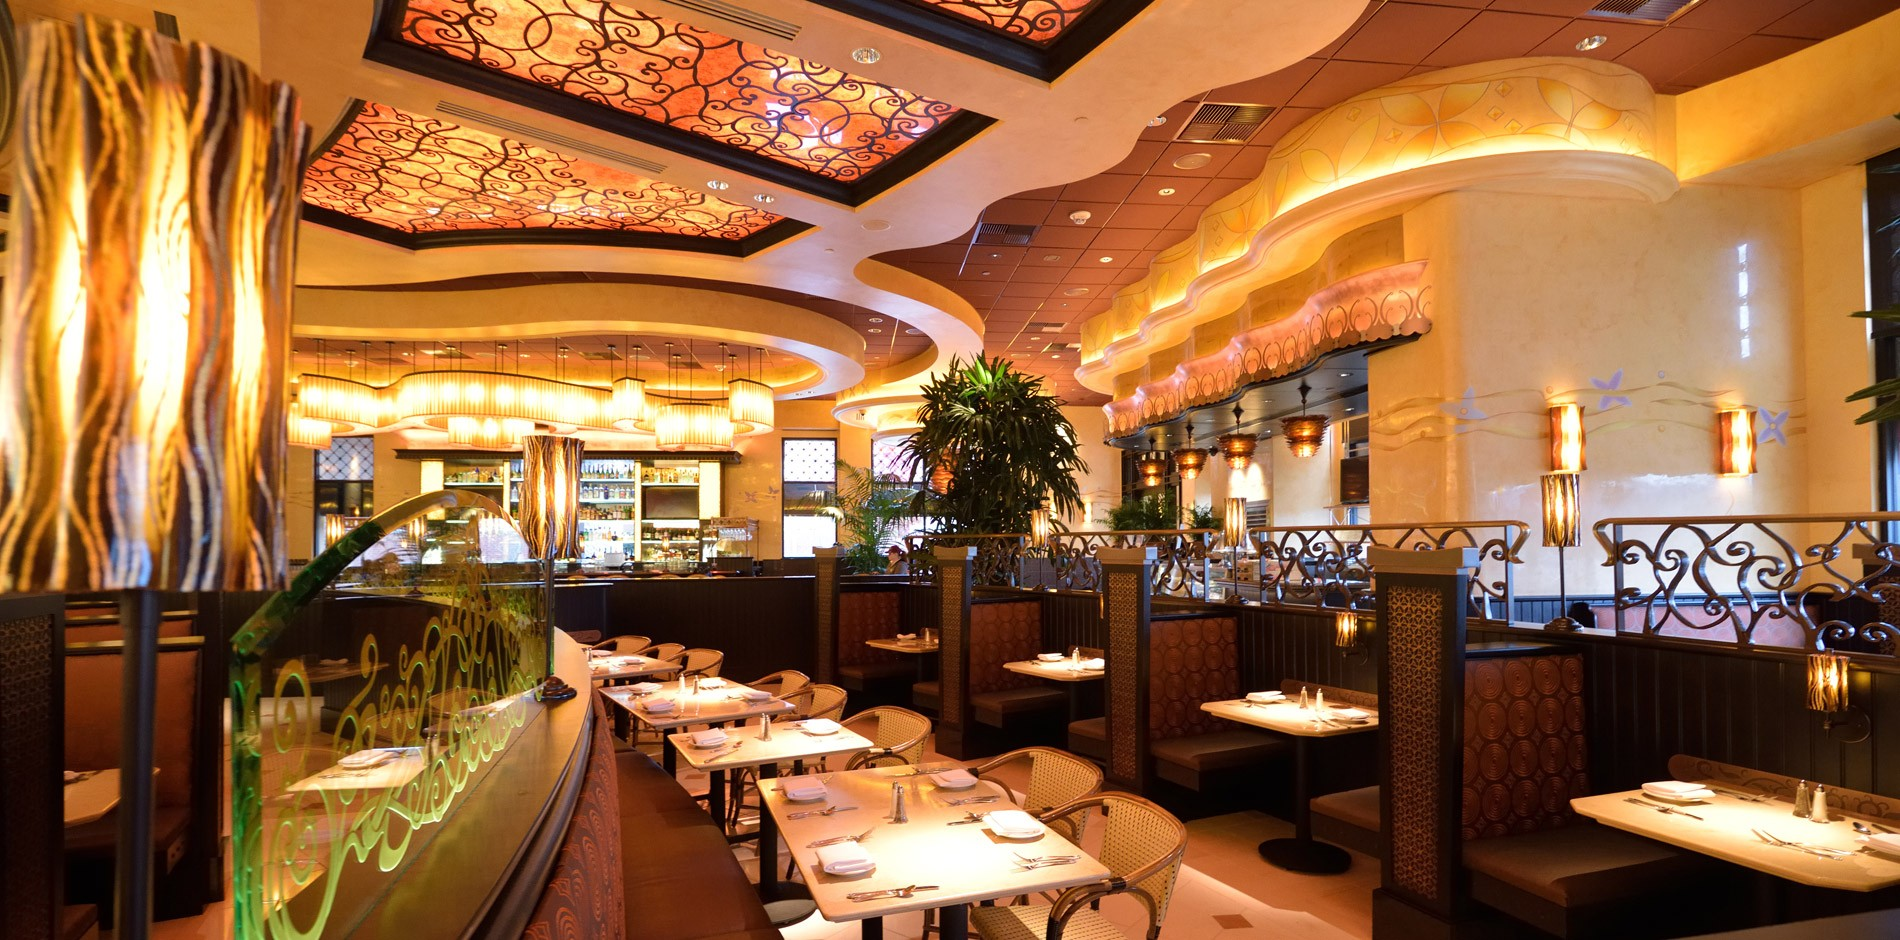 Find The Cheesecake Factory restaurant nearest you. Please enter a valid City and State or ZIP (ex. Beverly Hills, CA).